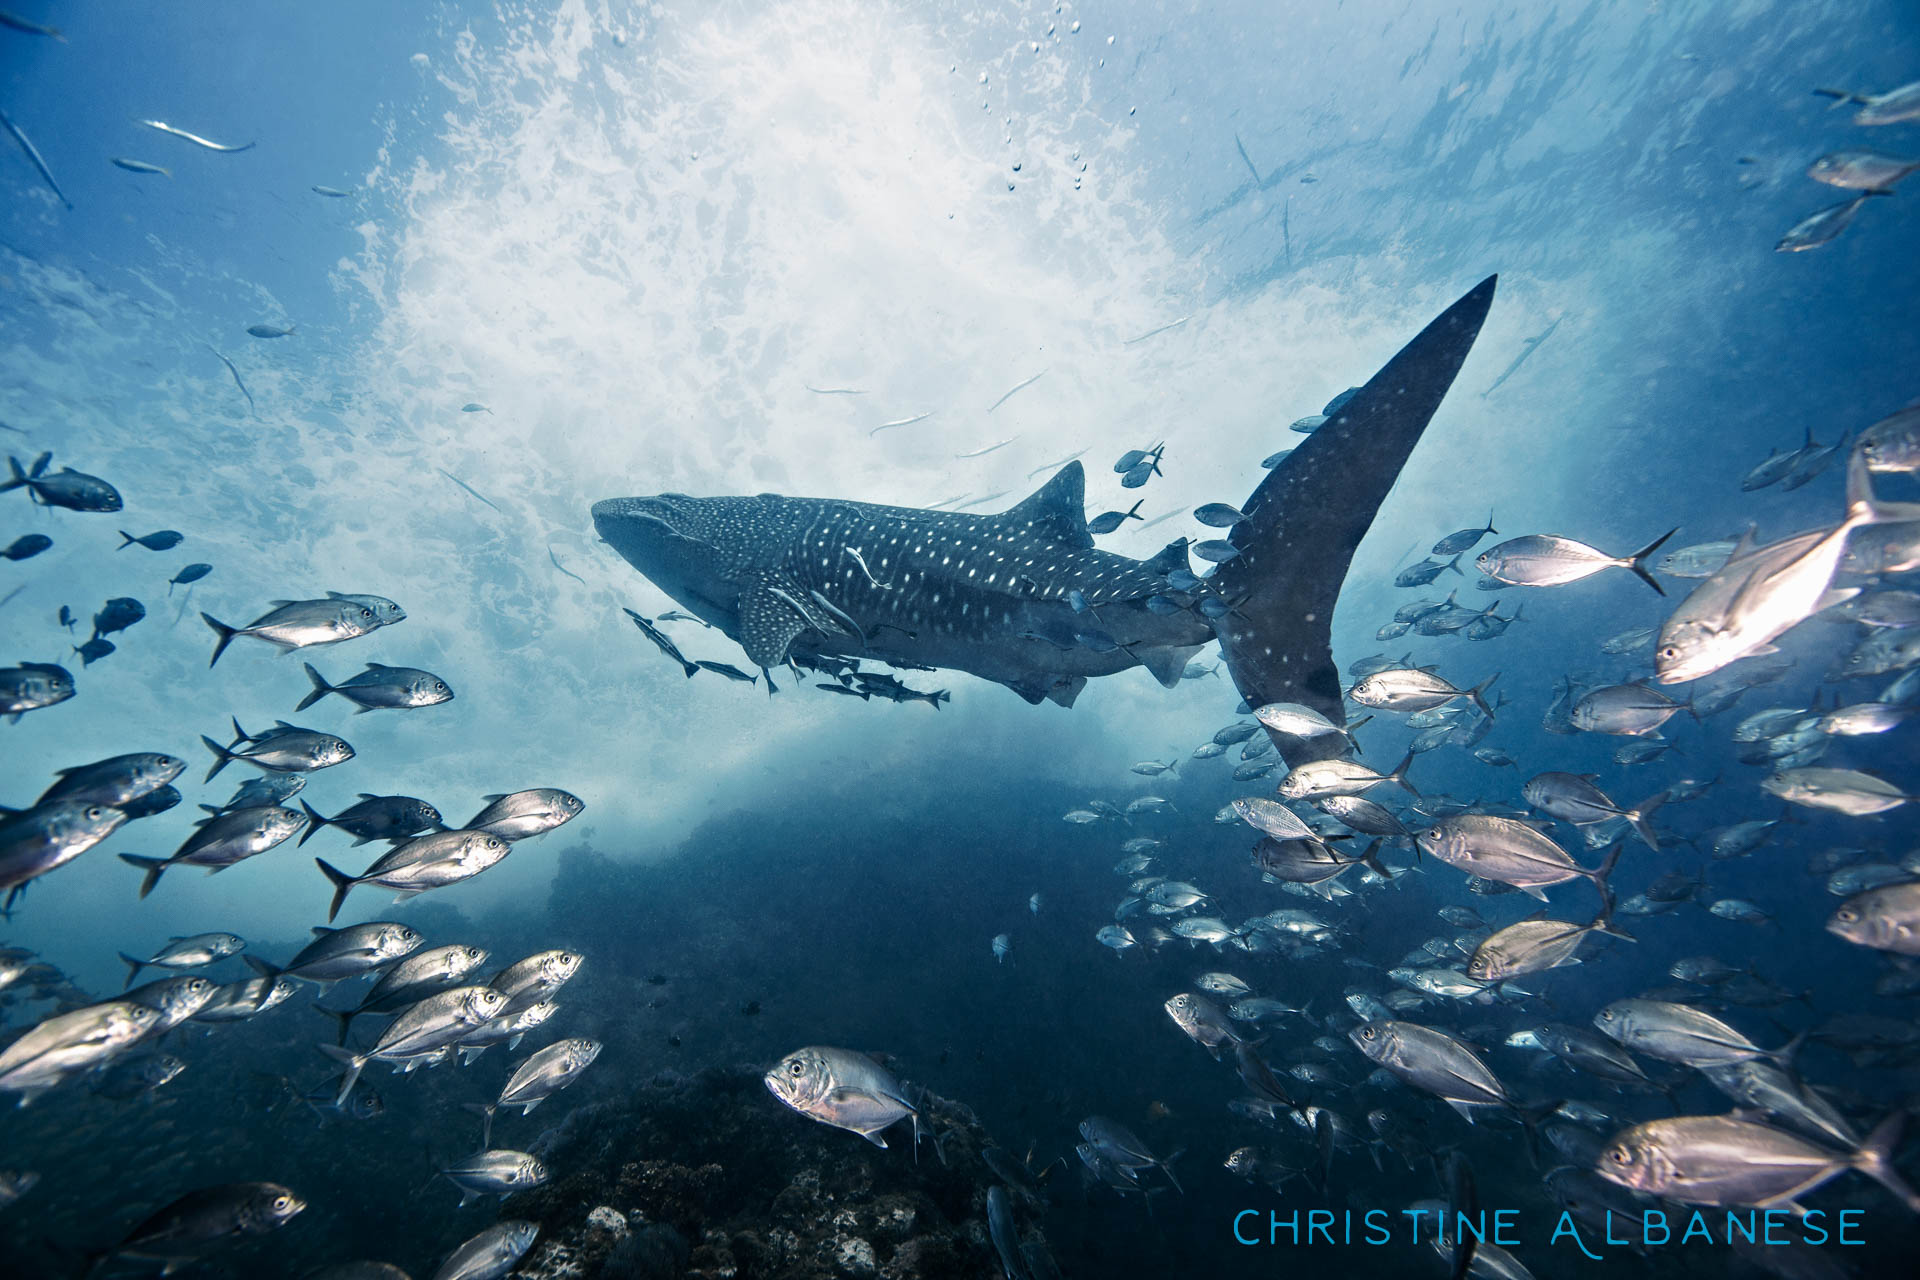 On March 3rd 2015, something magical happened.... I saw my very first whaleshark. This event in itself is pretty incredible, but it meant so much more to me.  It took 15 months of diving on Koh Tao nearly every day... there have been sightings, sure, but they always happened on the one day I would take off, or it showed up an hour after I left a dive site etc. I had a lot of bad luck. But finally... *500* dives later, it happened.  When I saw a large dark shape emerging out of the blue, I just knew. My heart started racing... and as it swam right over my head at an arm's reach away, my eyes welled with tears. Finally! I screamed with glee and cried with joy. Tears streamed down my face and into my mask. How lucky I was! I had my camera... and I was alone with it (for the moment). This is my favorite shot ever.  This photo landed me a brief 15mins of fame over at National Geographic My Shot... here is the blog featuring it by one of their editors, Lauri Hafvenstein.   http://yourshotblog.nationalgeographic.com/post/138736418365/hashtag-challenge-underwater-lauri-hafvenstein